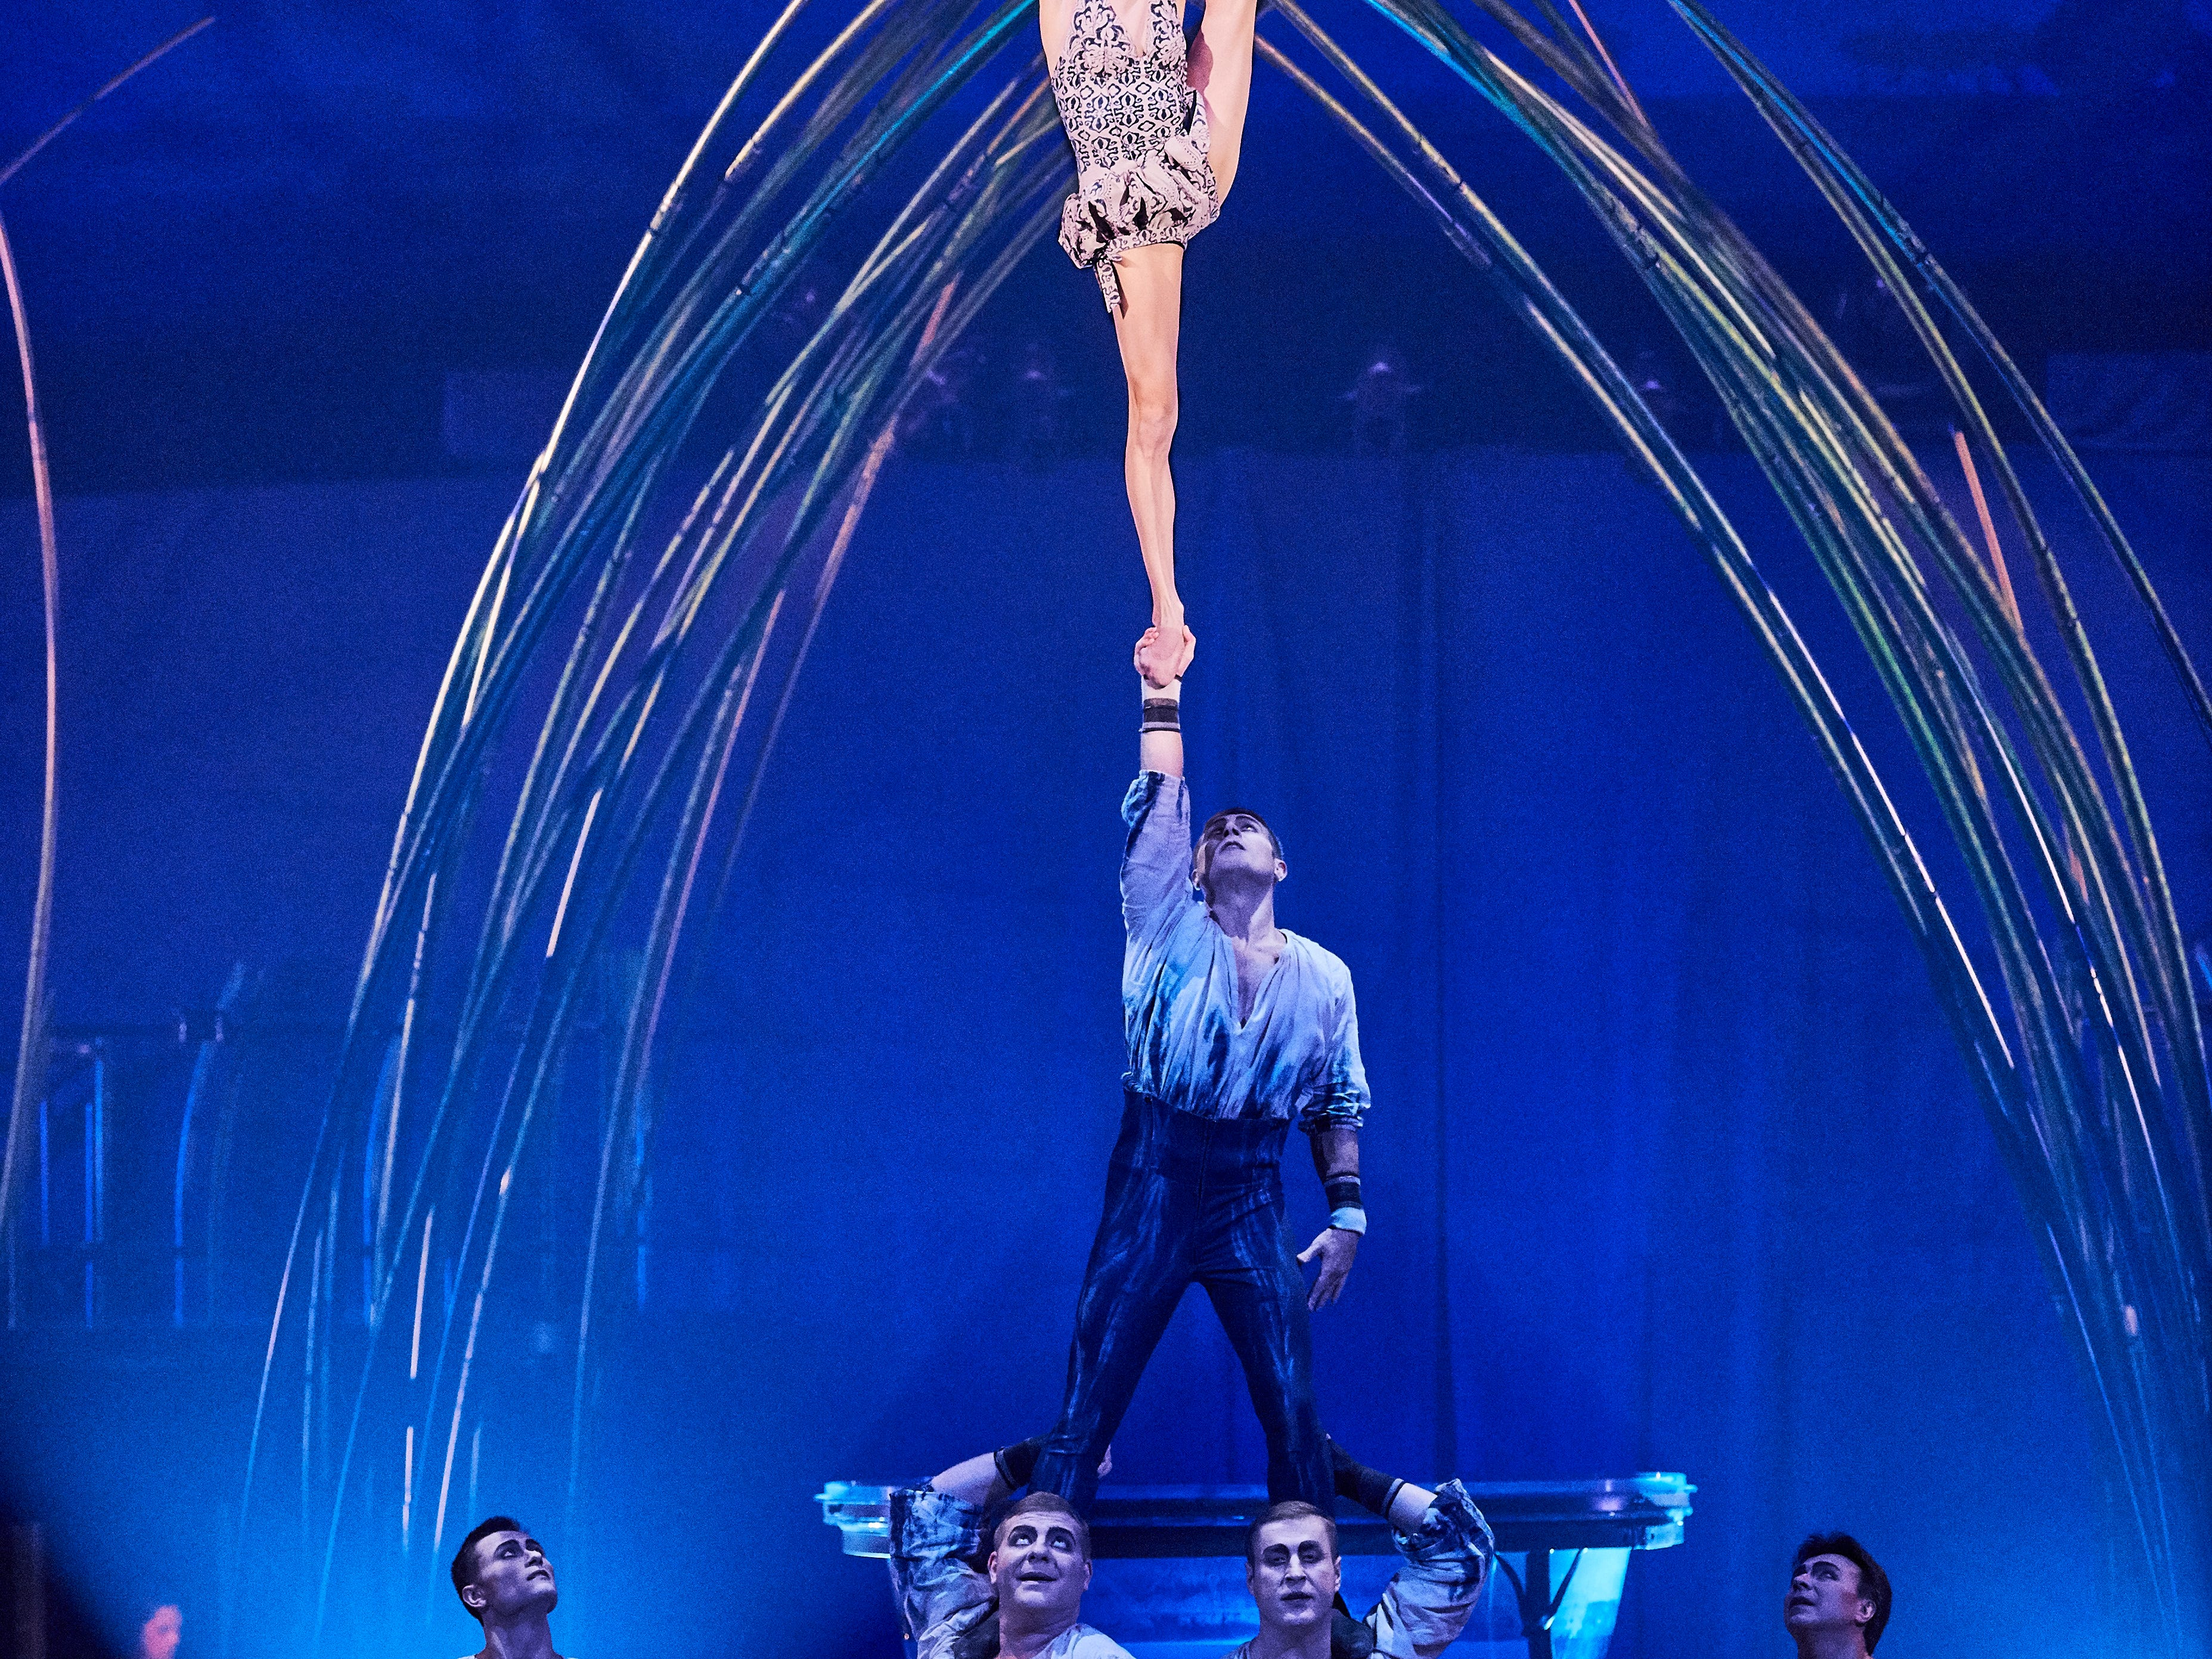 Cast members perform an acrobatic celebration where the porters interlock their arms and hands to create platforms, from which the flyers take-off and perform aerial tricks in Cirque Du Soleil.